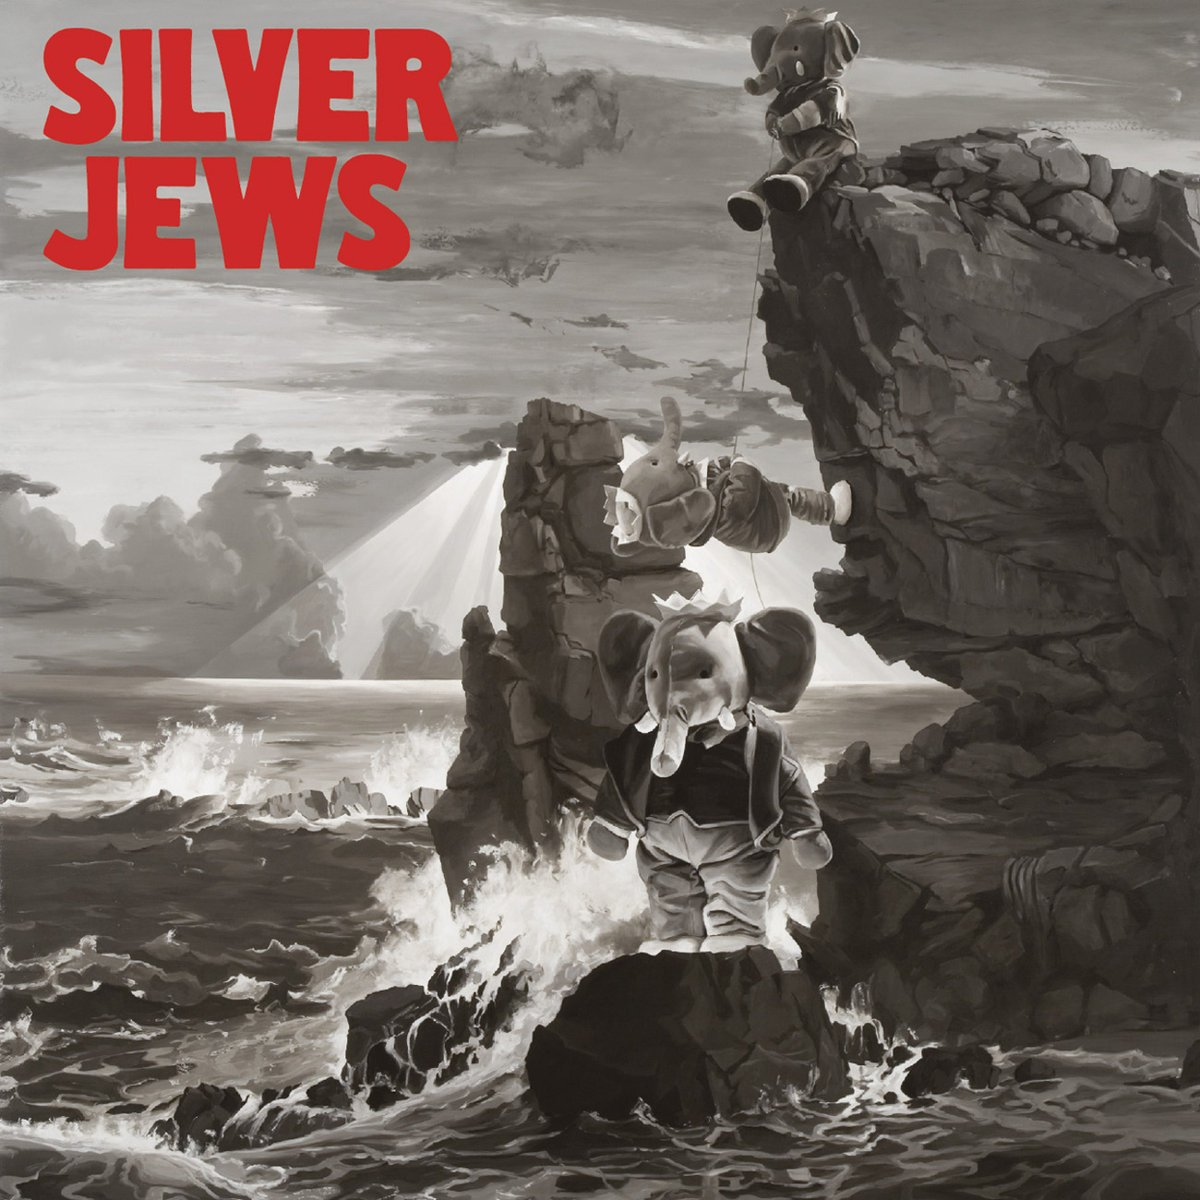 Silver Jews, Lookout Mountain, Lookout Sea